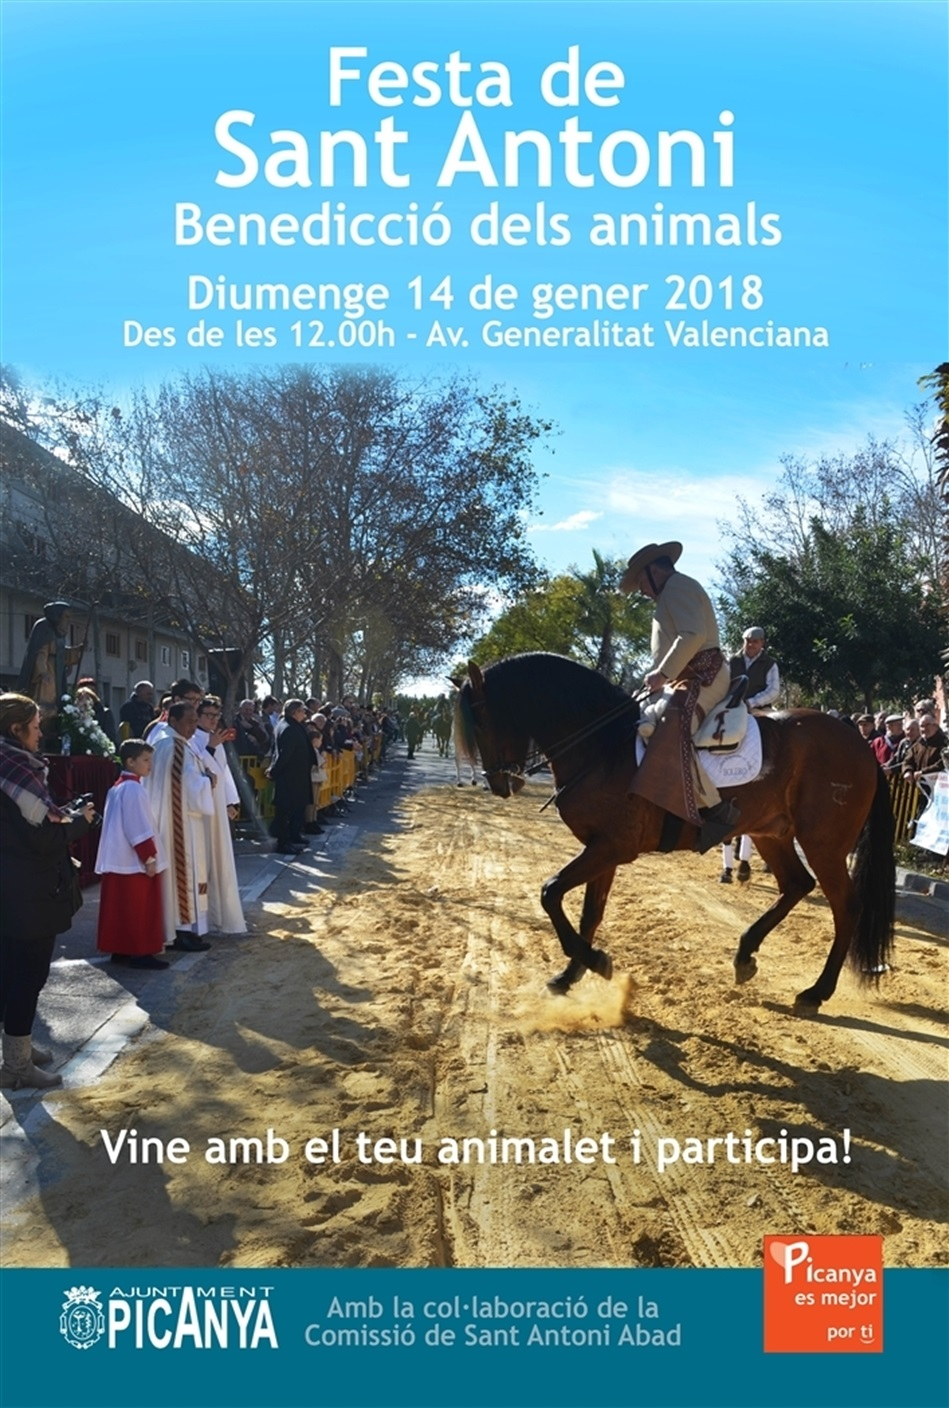 cartell_festa_sant_antonil_2017_final